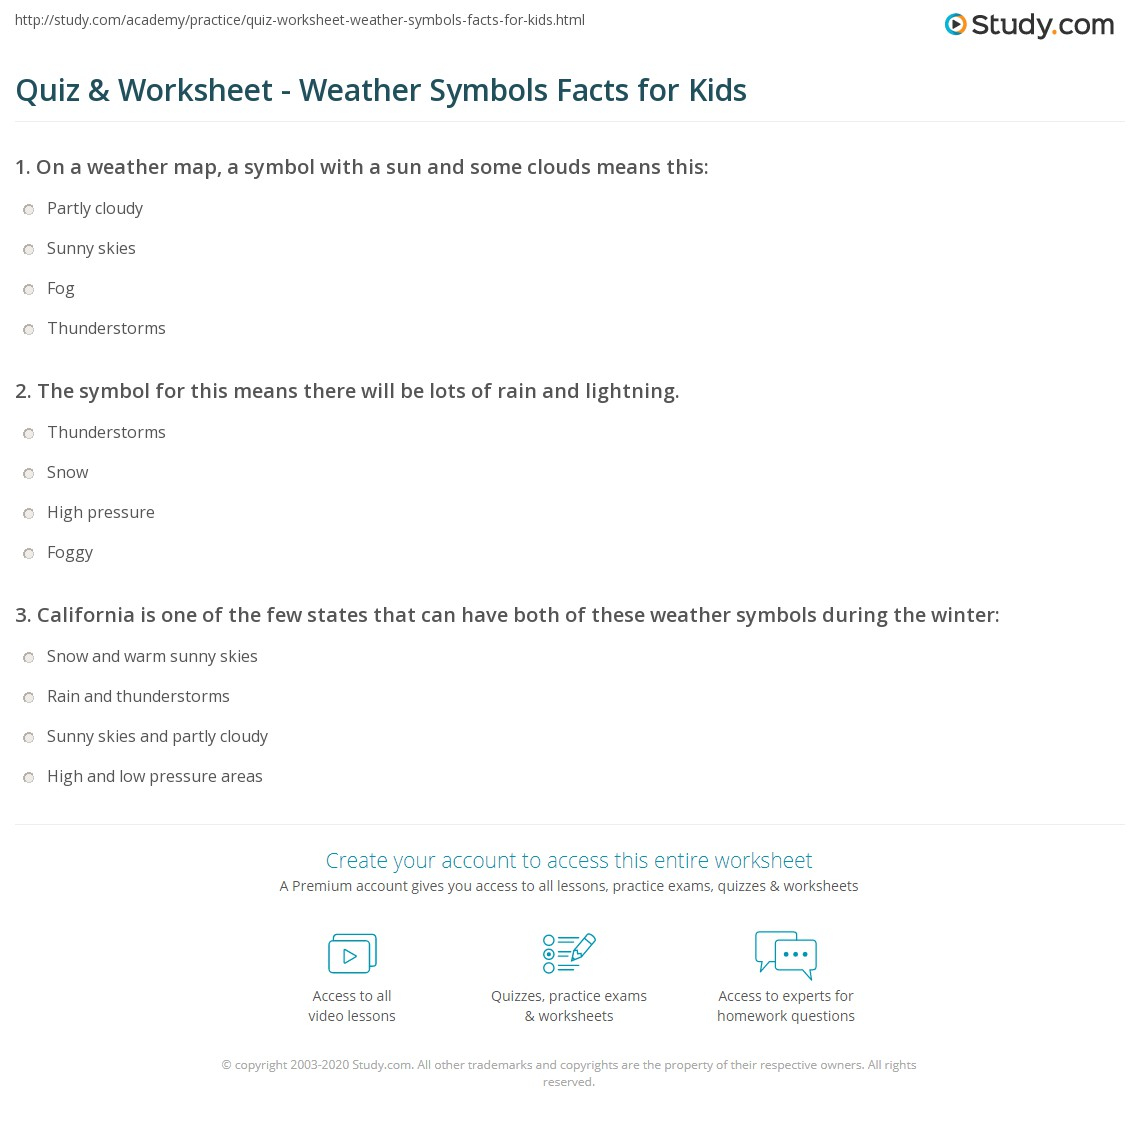 Tornado Symbol On Weather Map.Quiz Worksheet Weather Symbols Facts For Kids Study Com